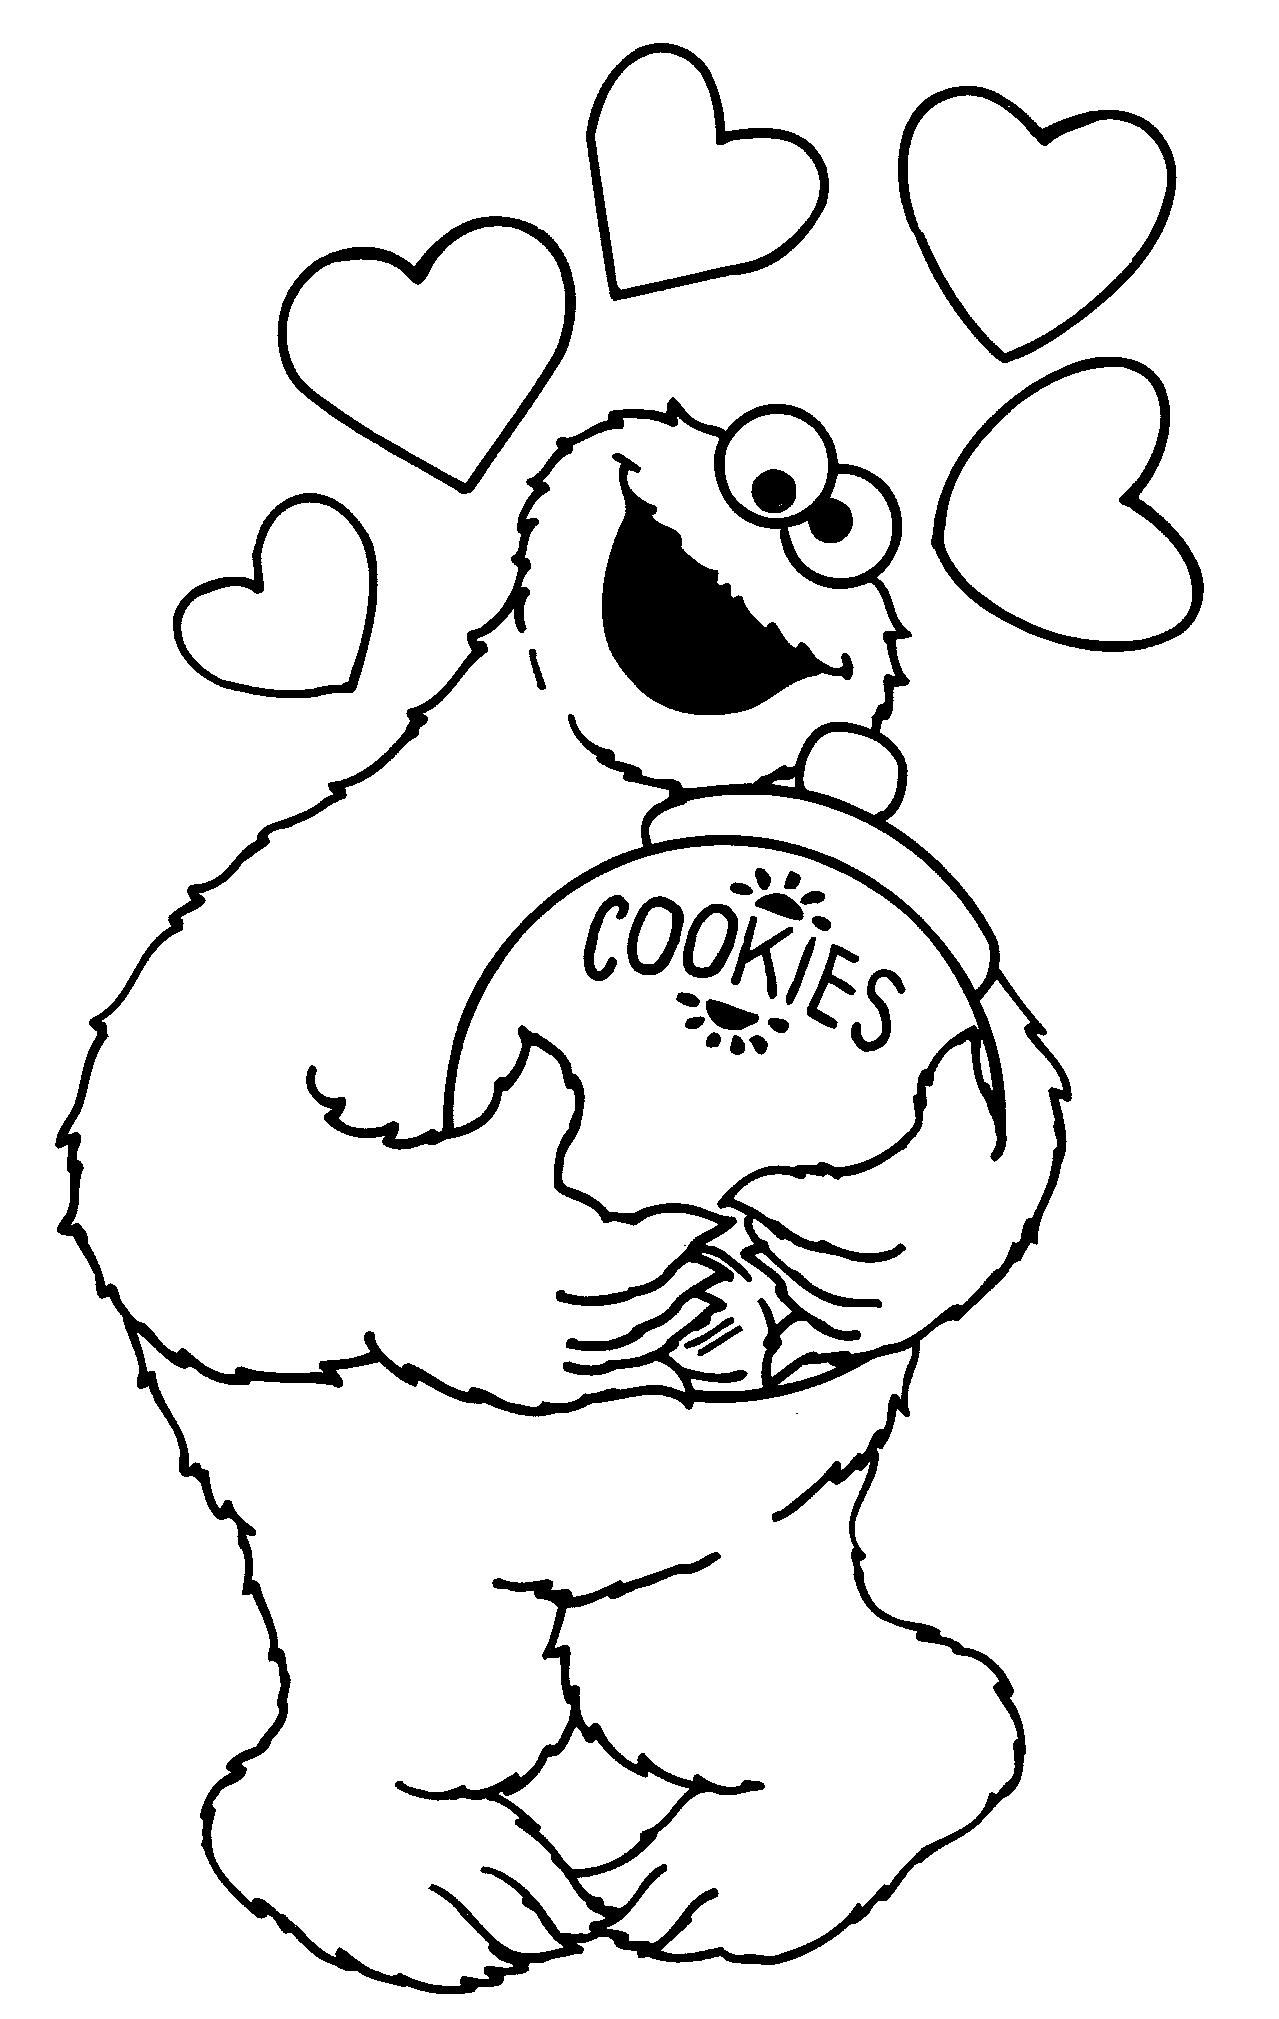 cookie monster cookie jar coloring pages coloring pages